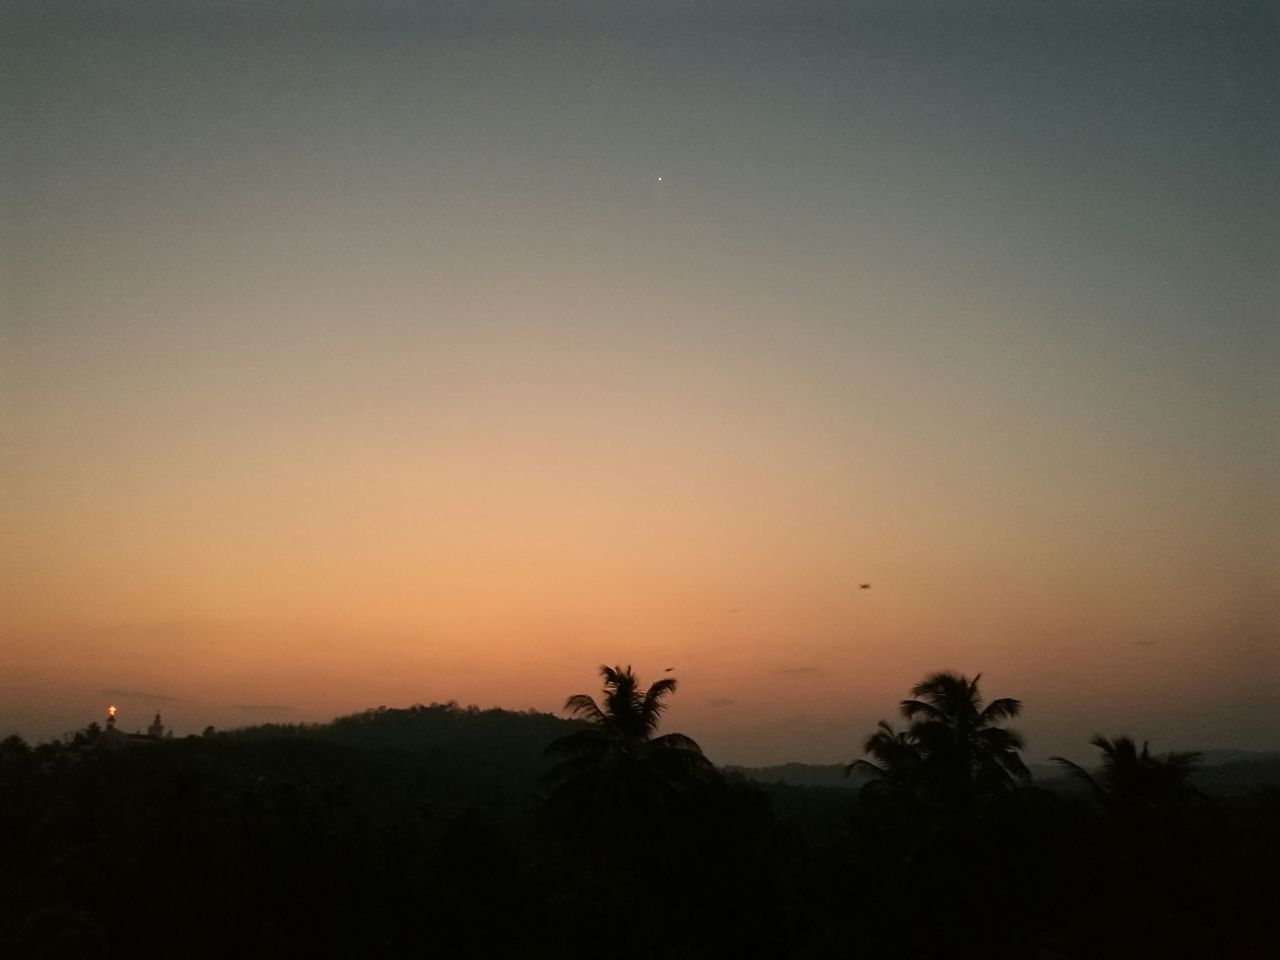 Sunset Silhouette Tree No People Nature Beauty In Nature Sky Outdoors Tranquil Scene Eyemmarket Kerala